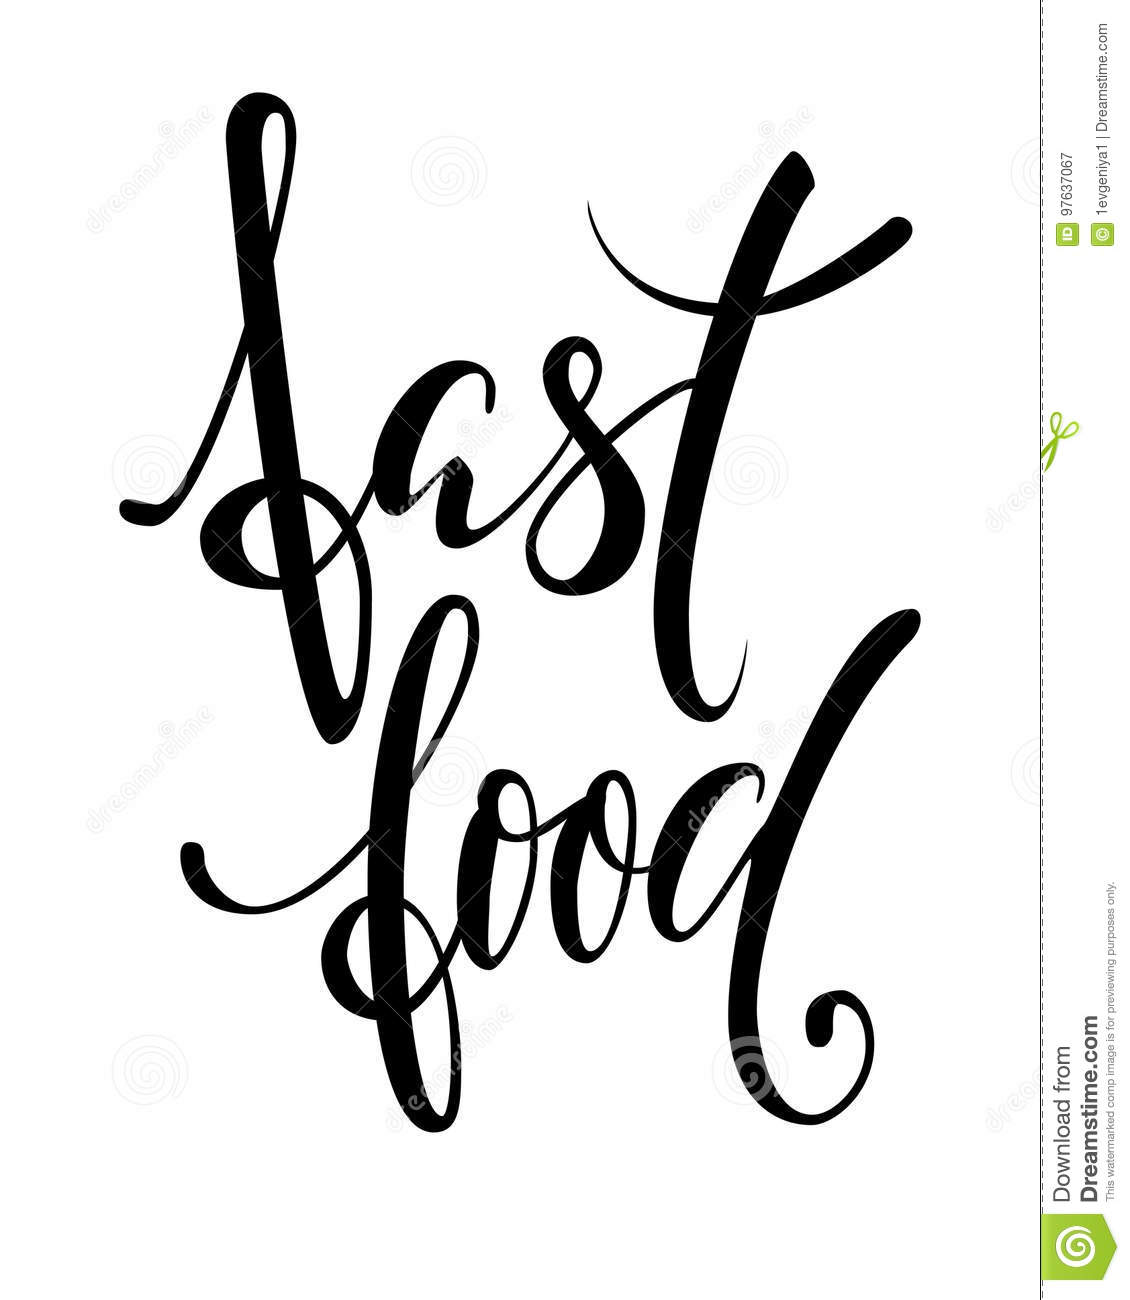 Hand Drawn Calligraphy And Brush Pen Lettering Phrase Fast Food